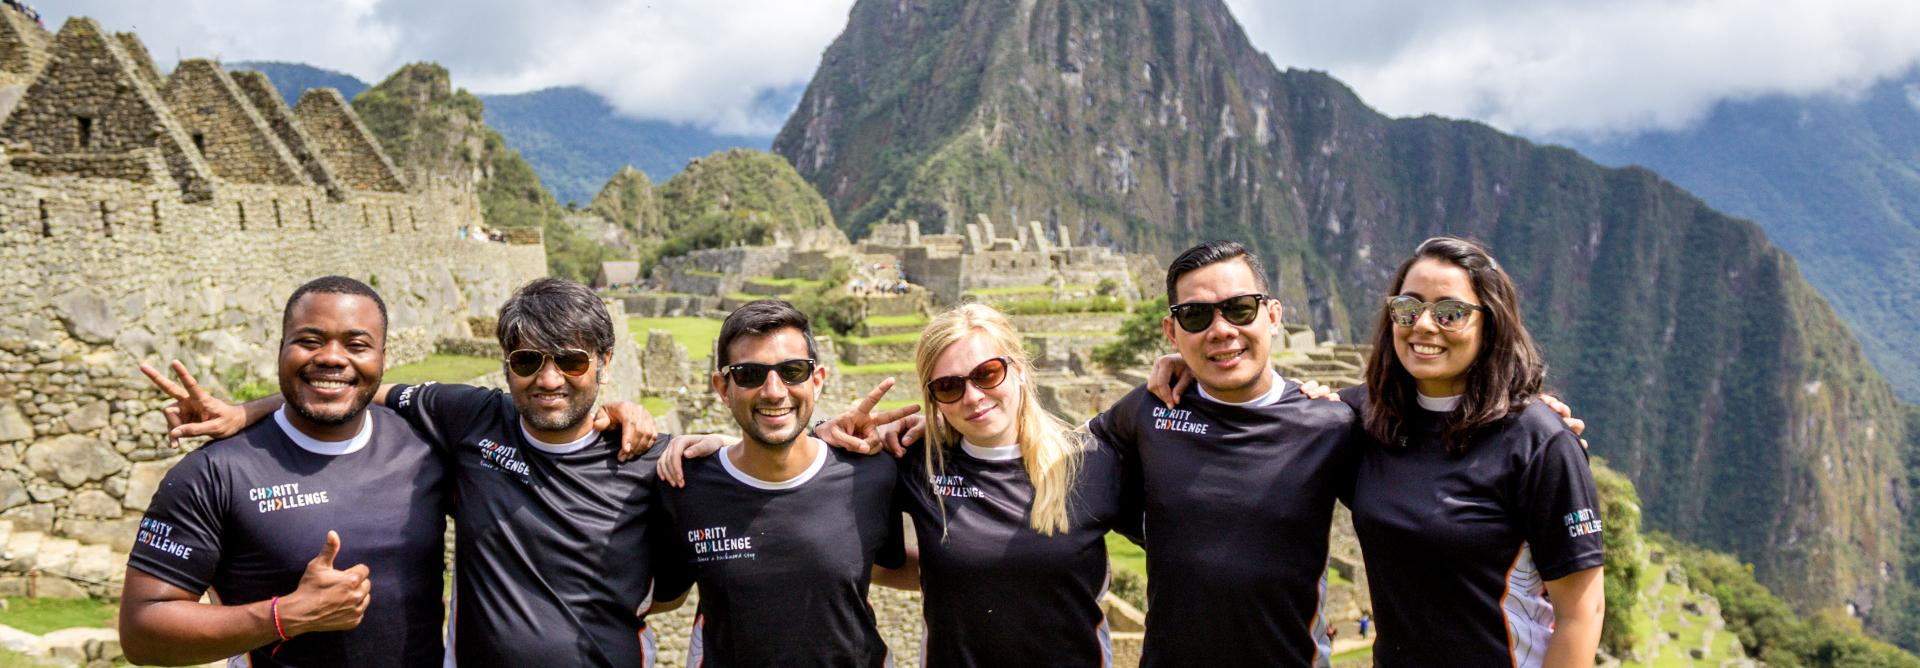 Charity Trek to Machu Picchu in Peru - charity challenge